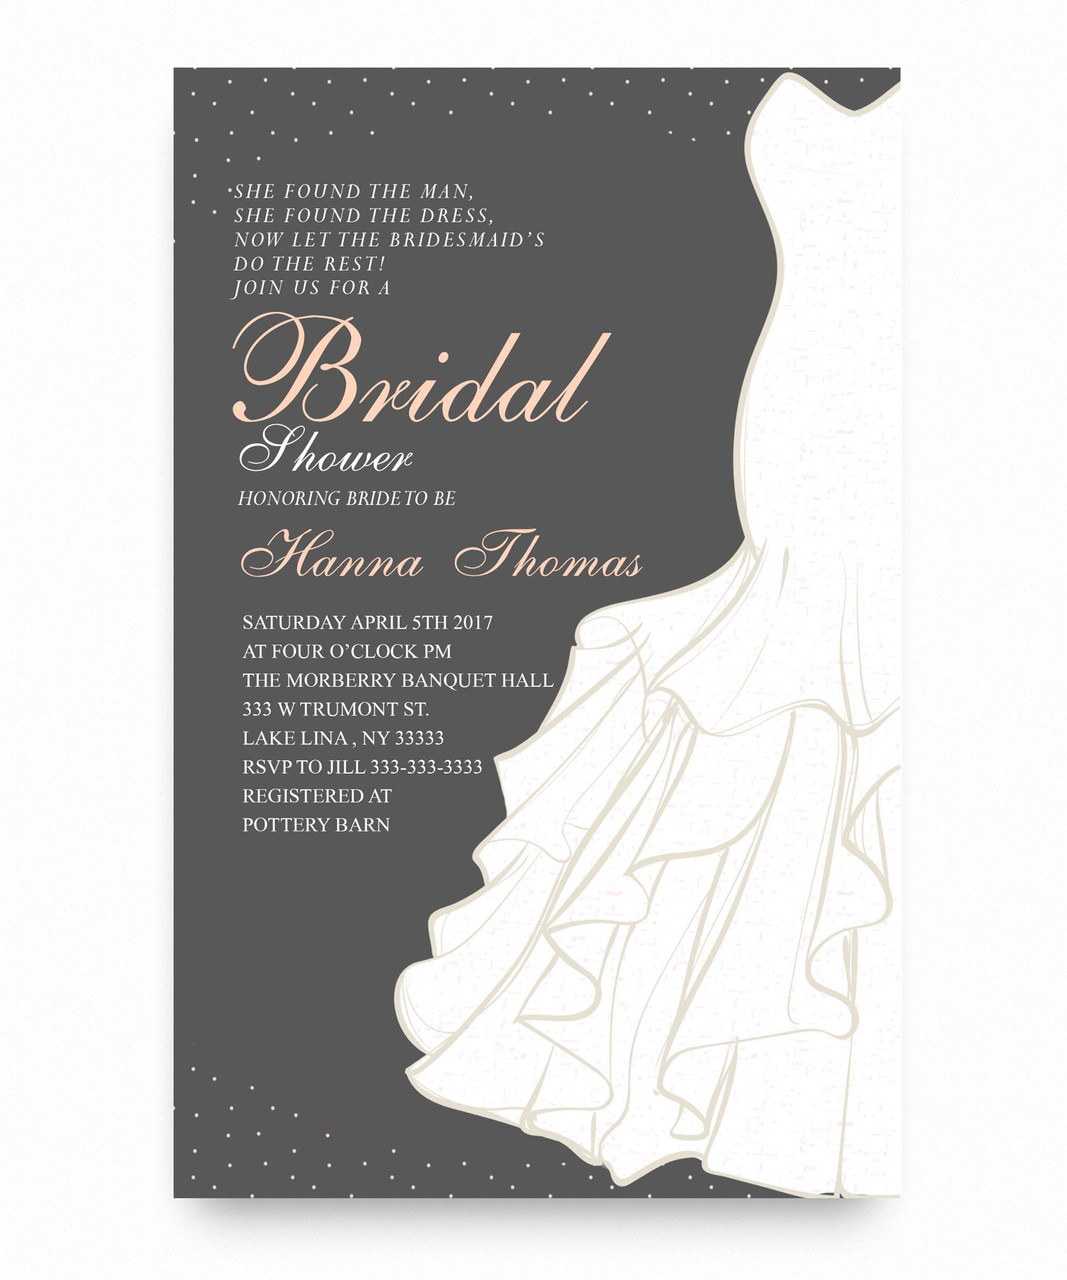 Bridal shower who gets invited picture ideas references bridal shower who gets invited wedding dress bridal shower invitation chalkboard bridal shower bride beautiful affordable filmwisefo Choice Image